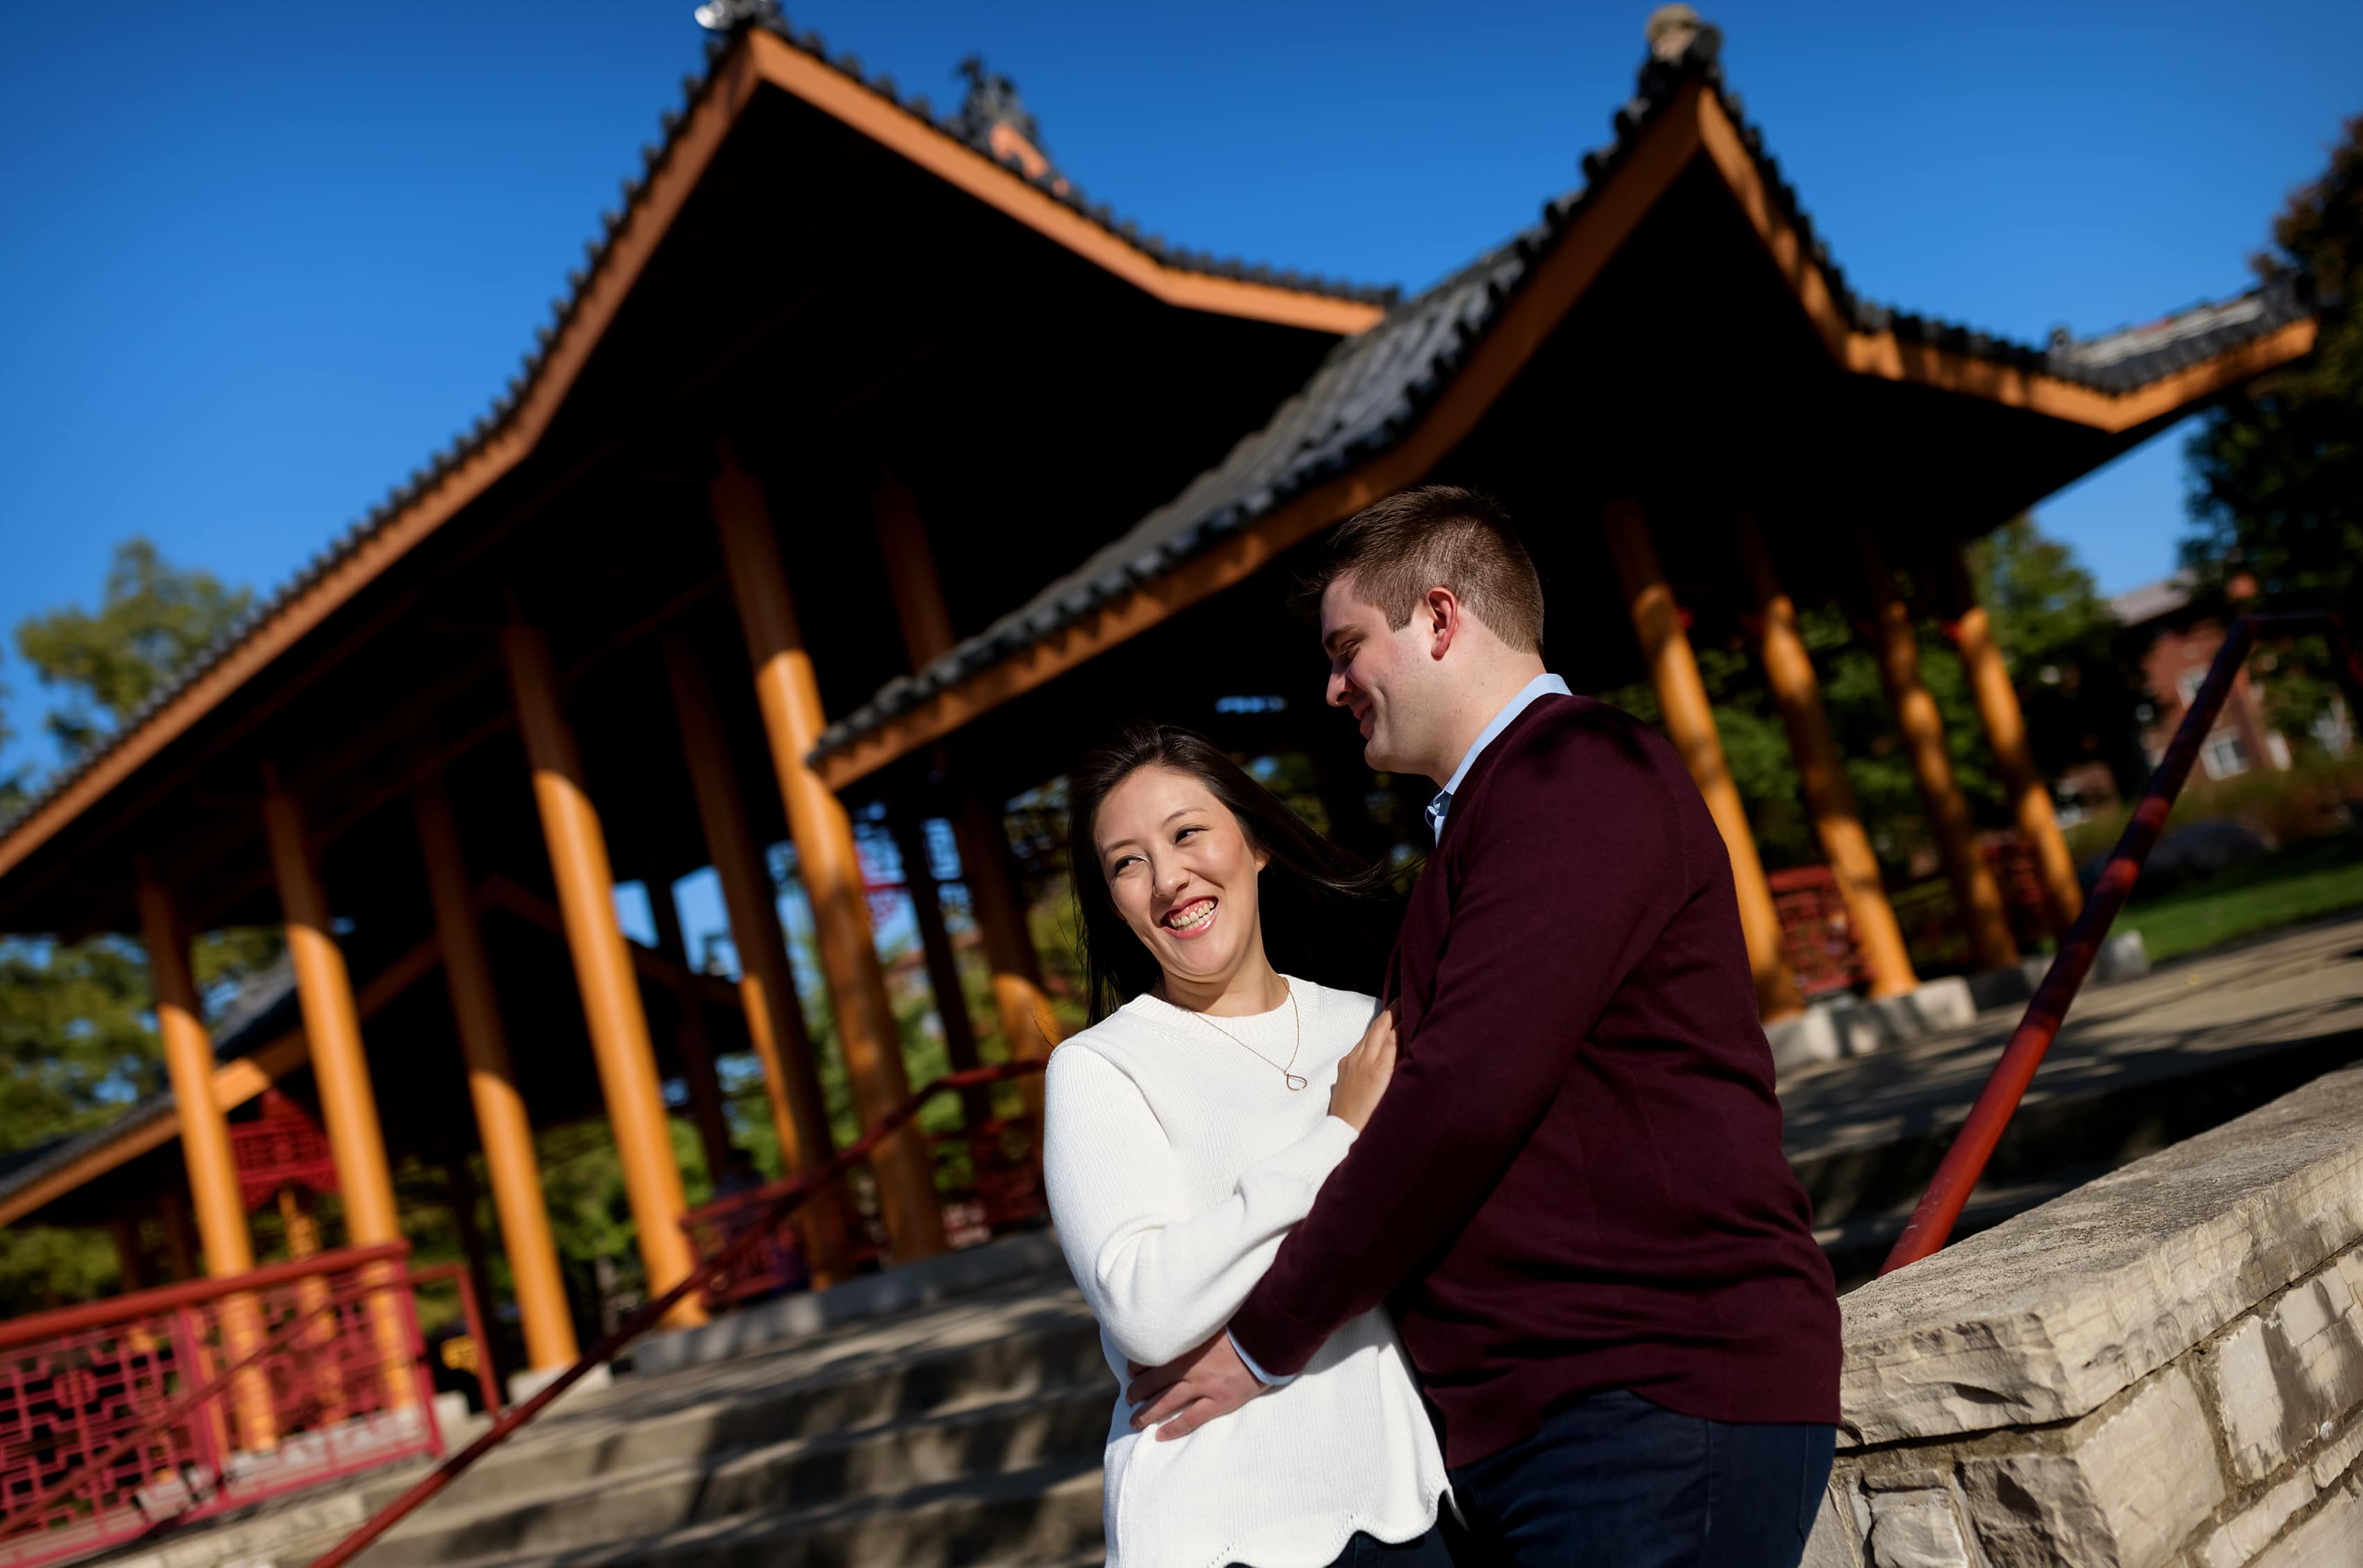 Couple poses for engagement photos at Ping Tom Memorial Park in Chicago's Chinatown neighborhood